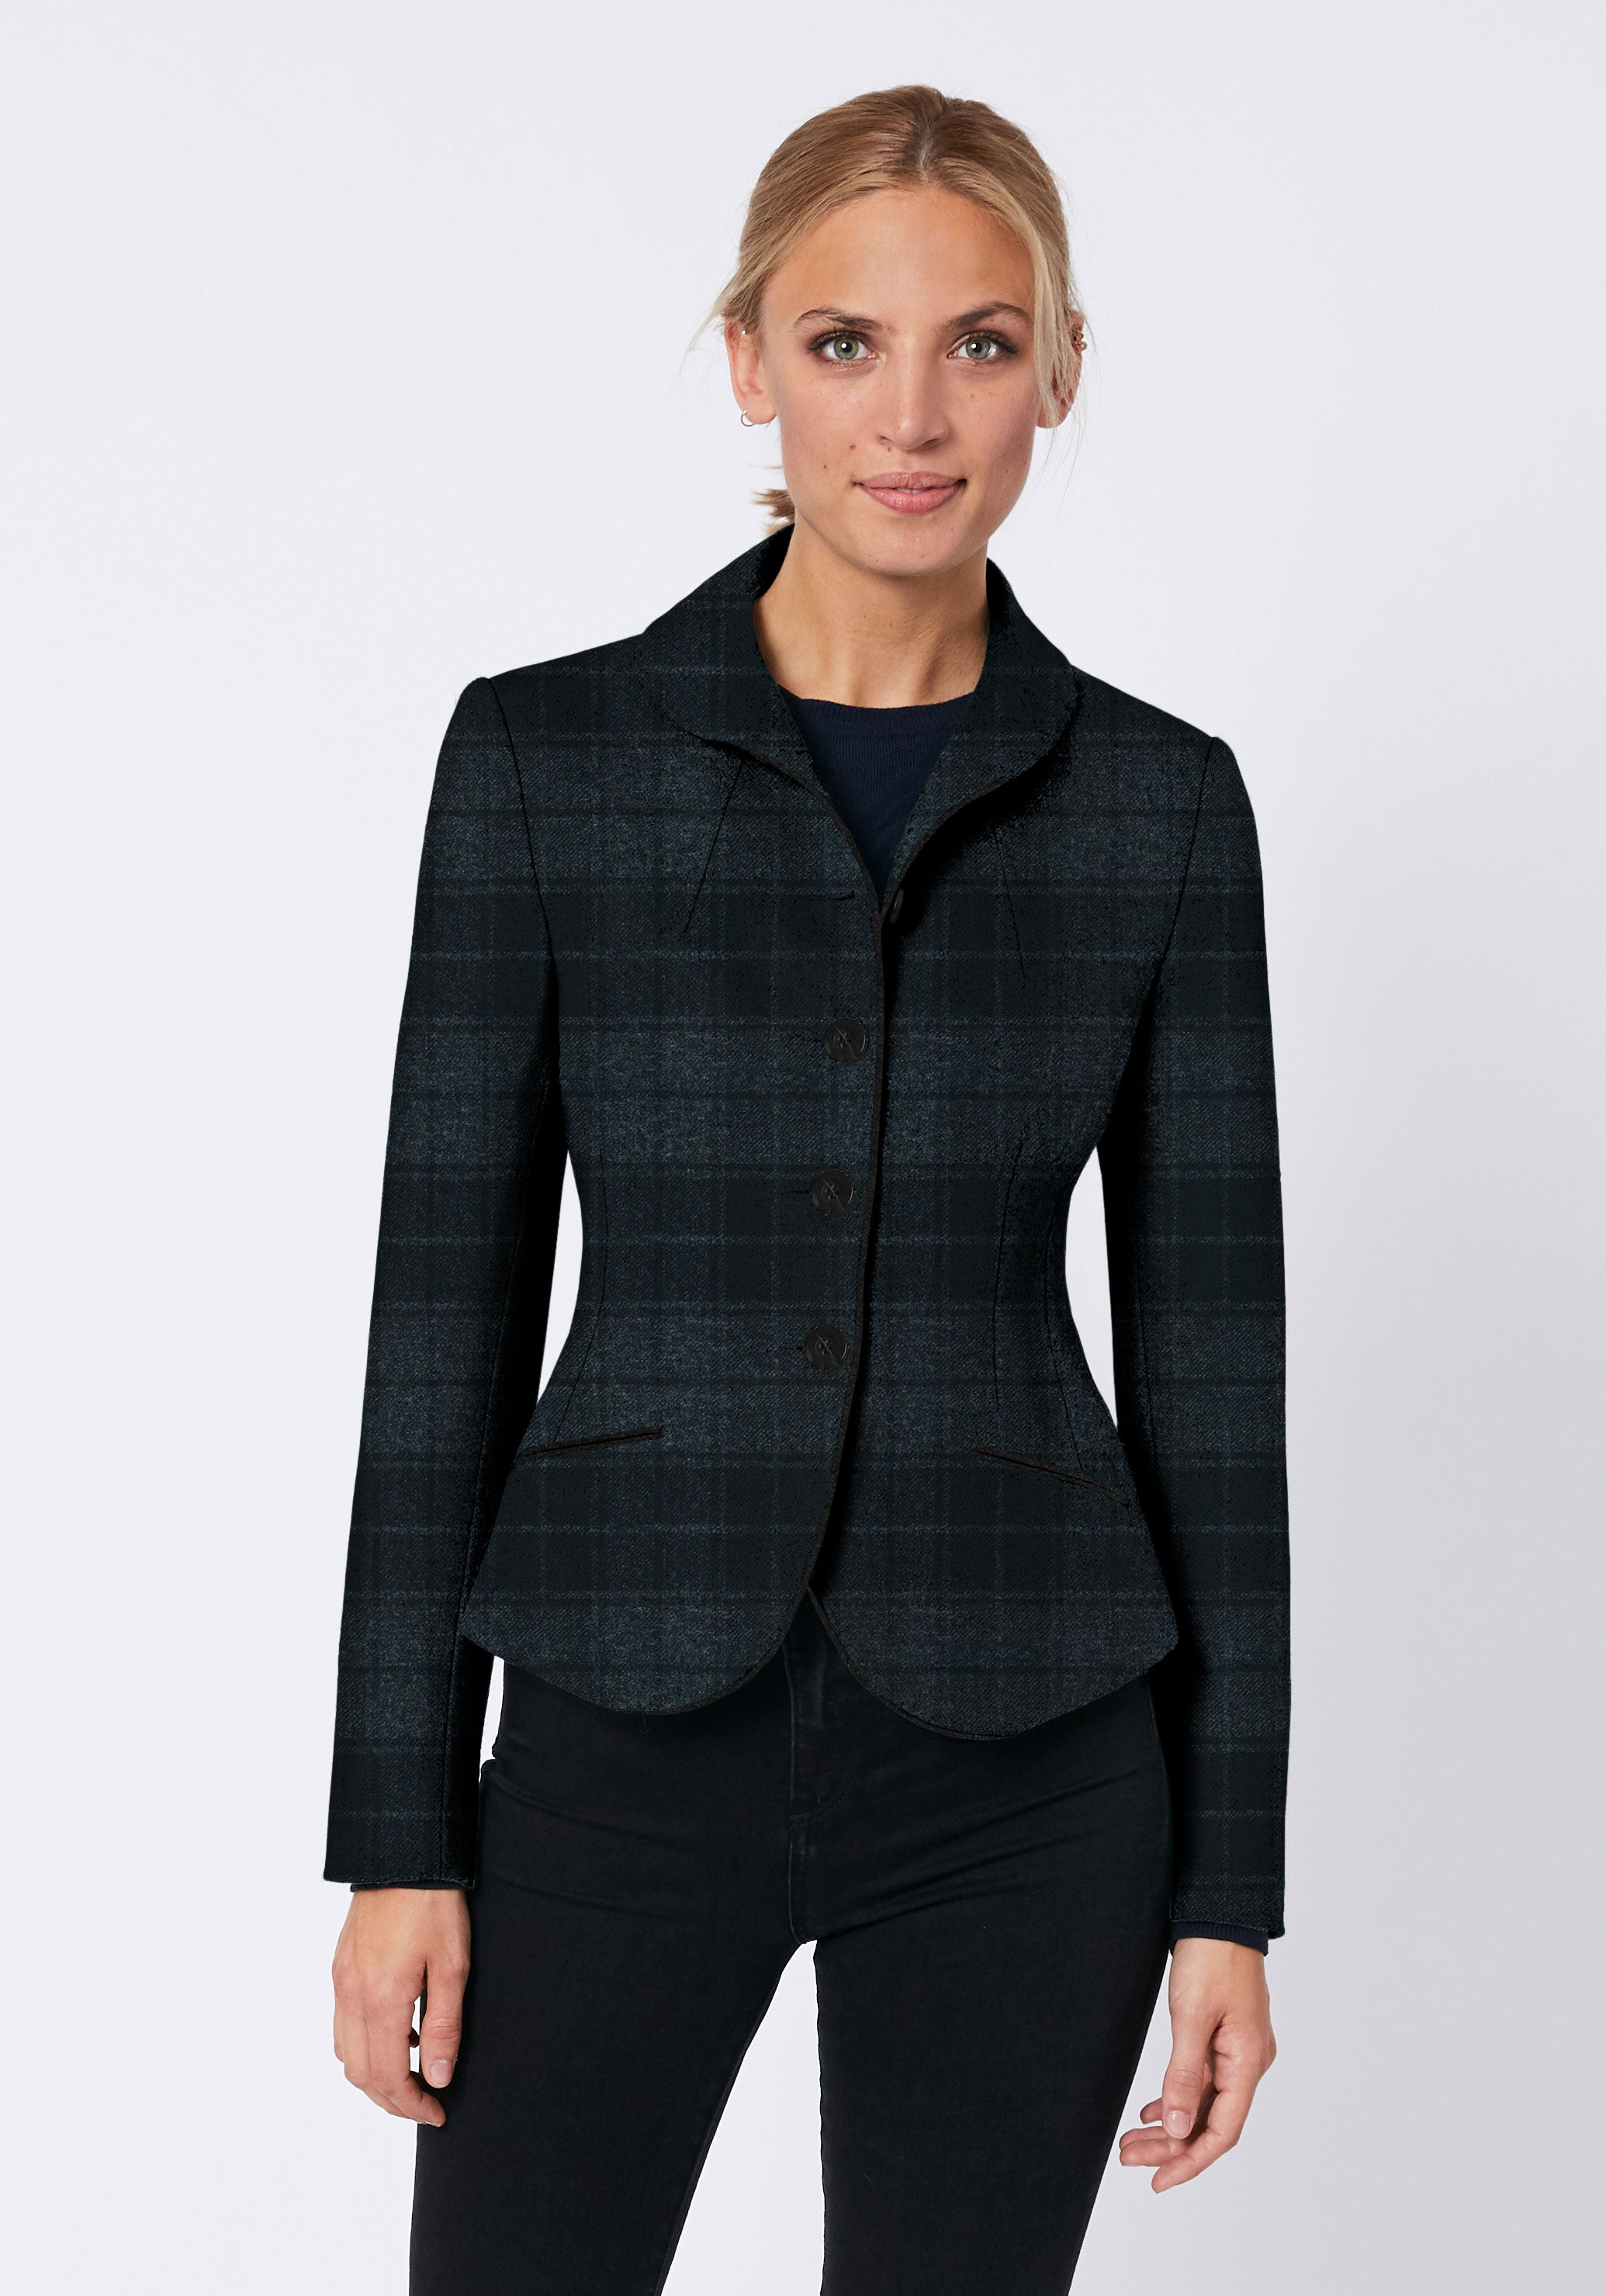 Alexander Jacket in Grey & Black Check